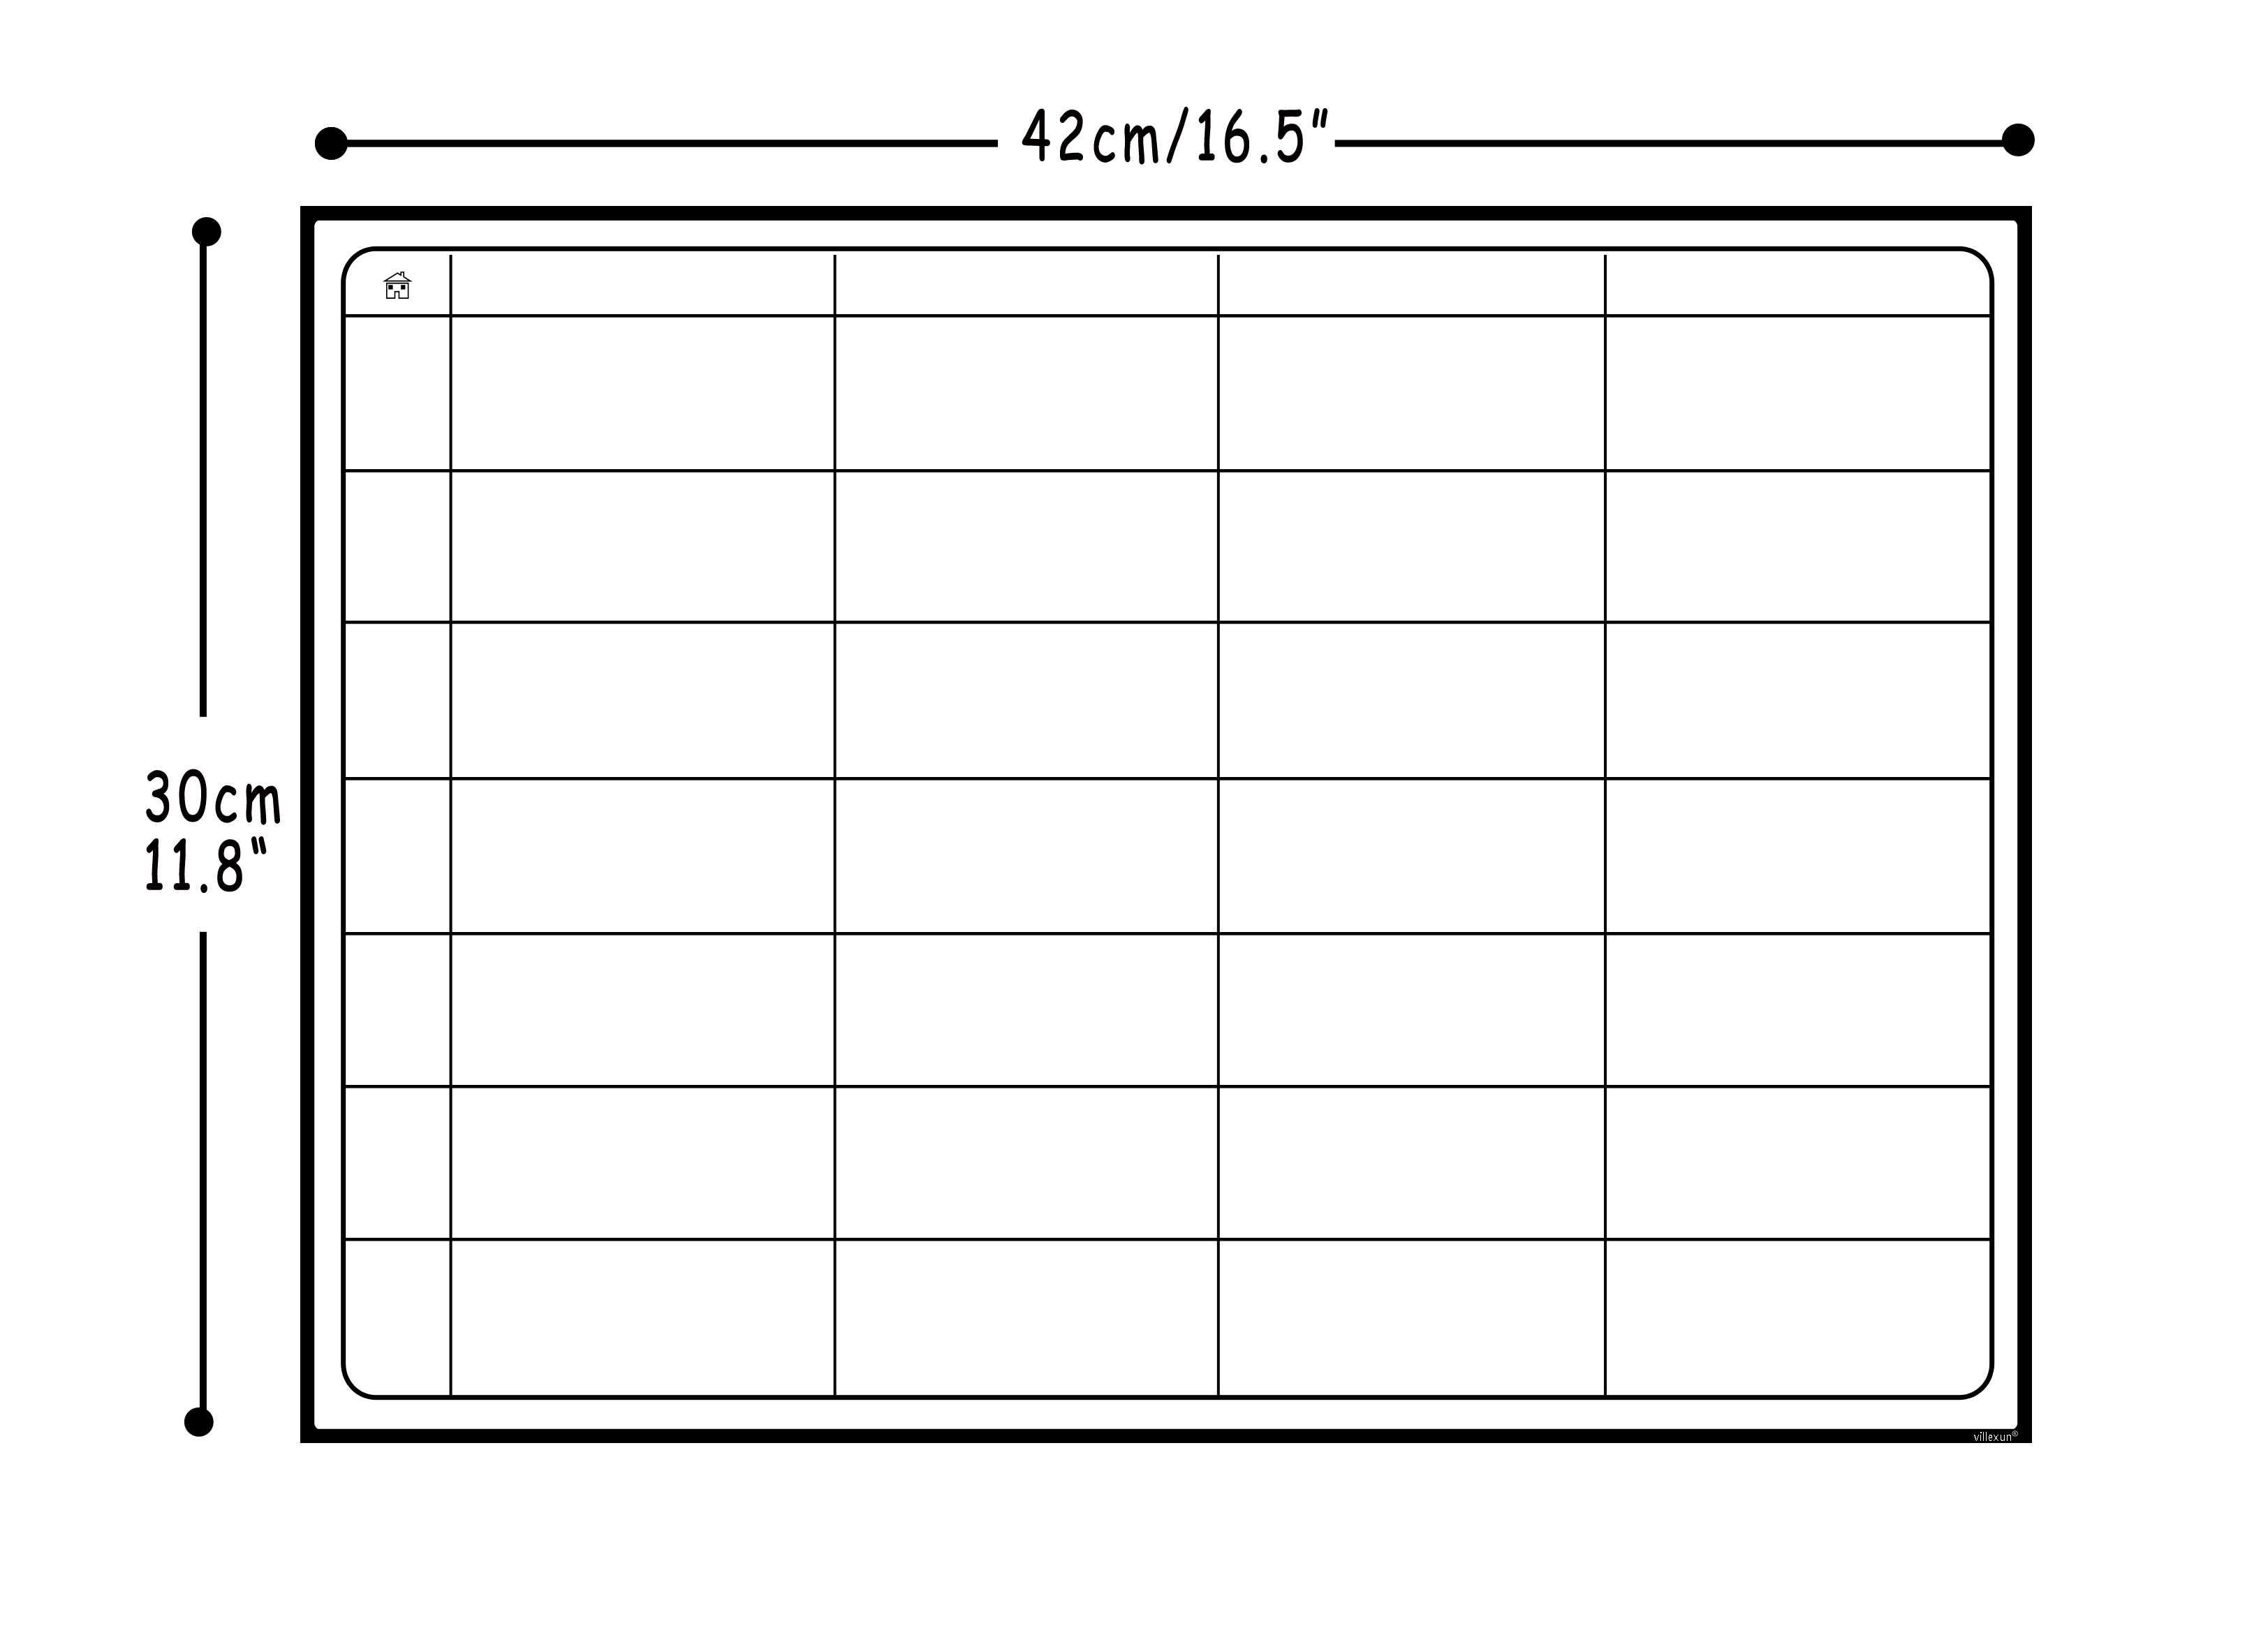 School White Boards Planner Board Magnetic Whiteboard Chore Daily Weekly Monthly Scheduling Magnetic Fridge Stickers With 8 Pen